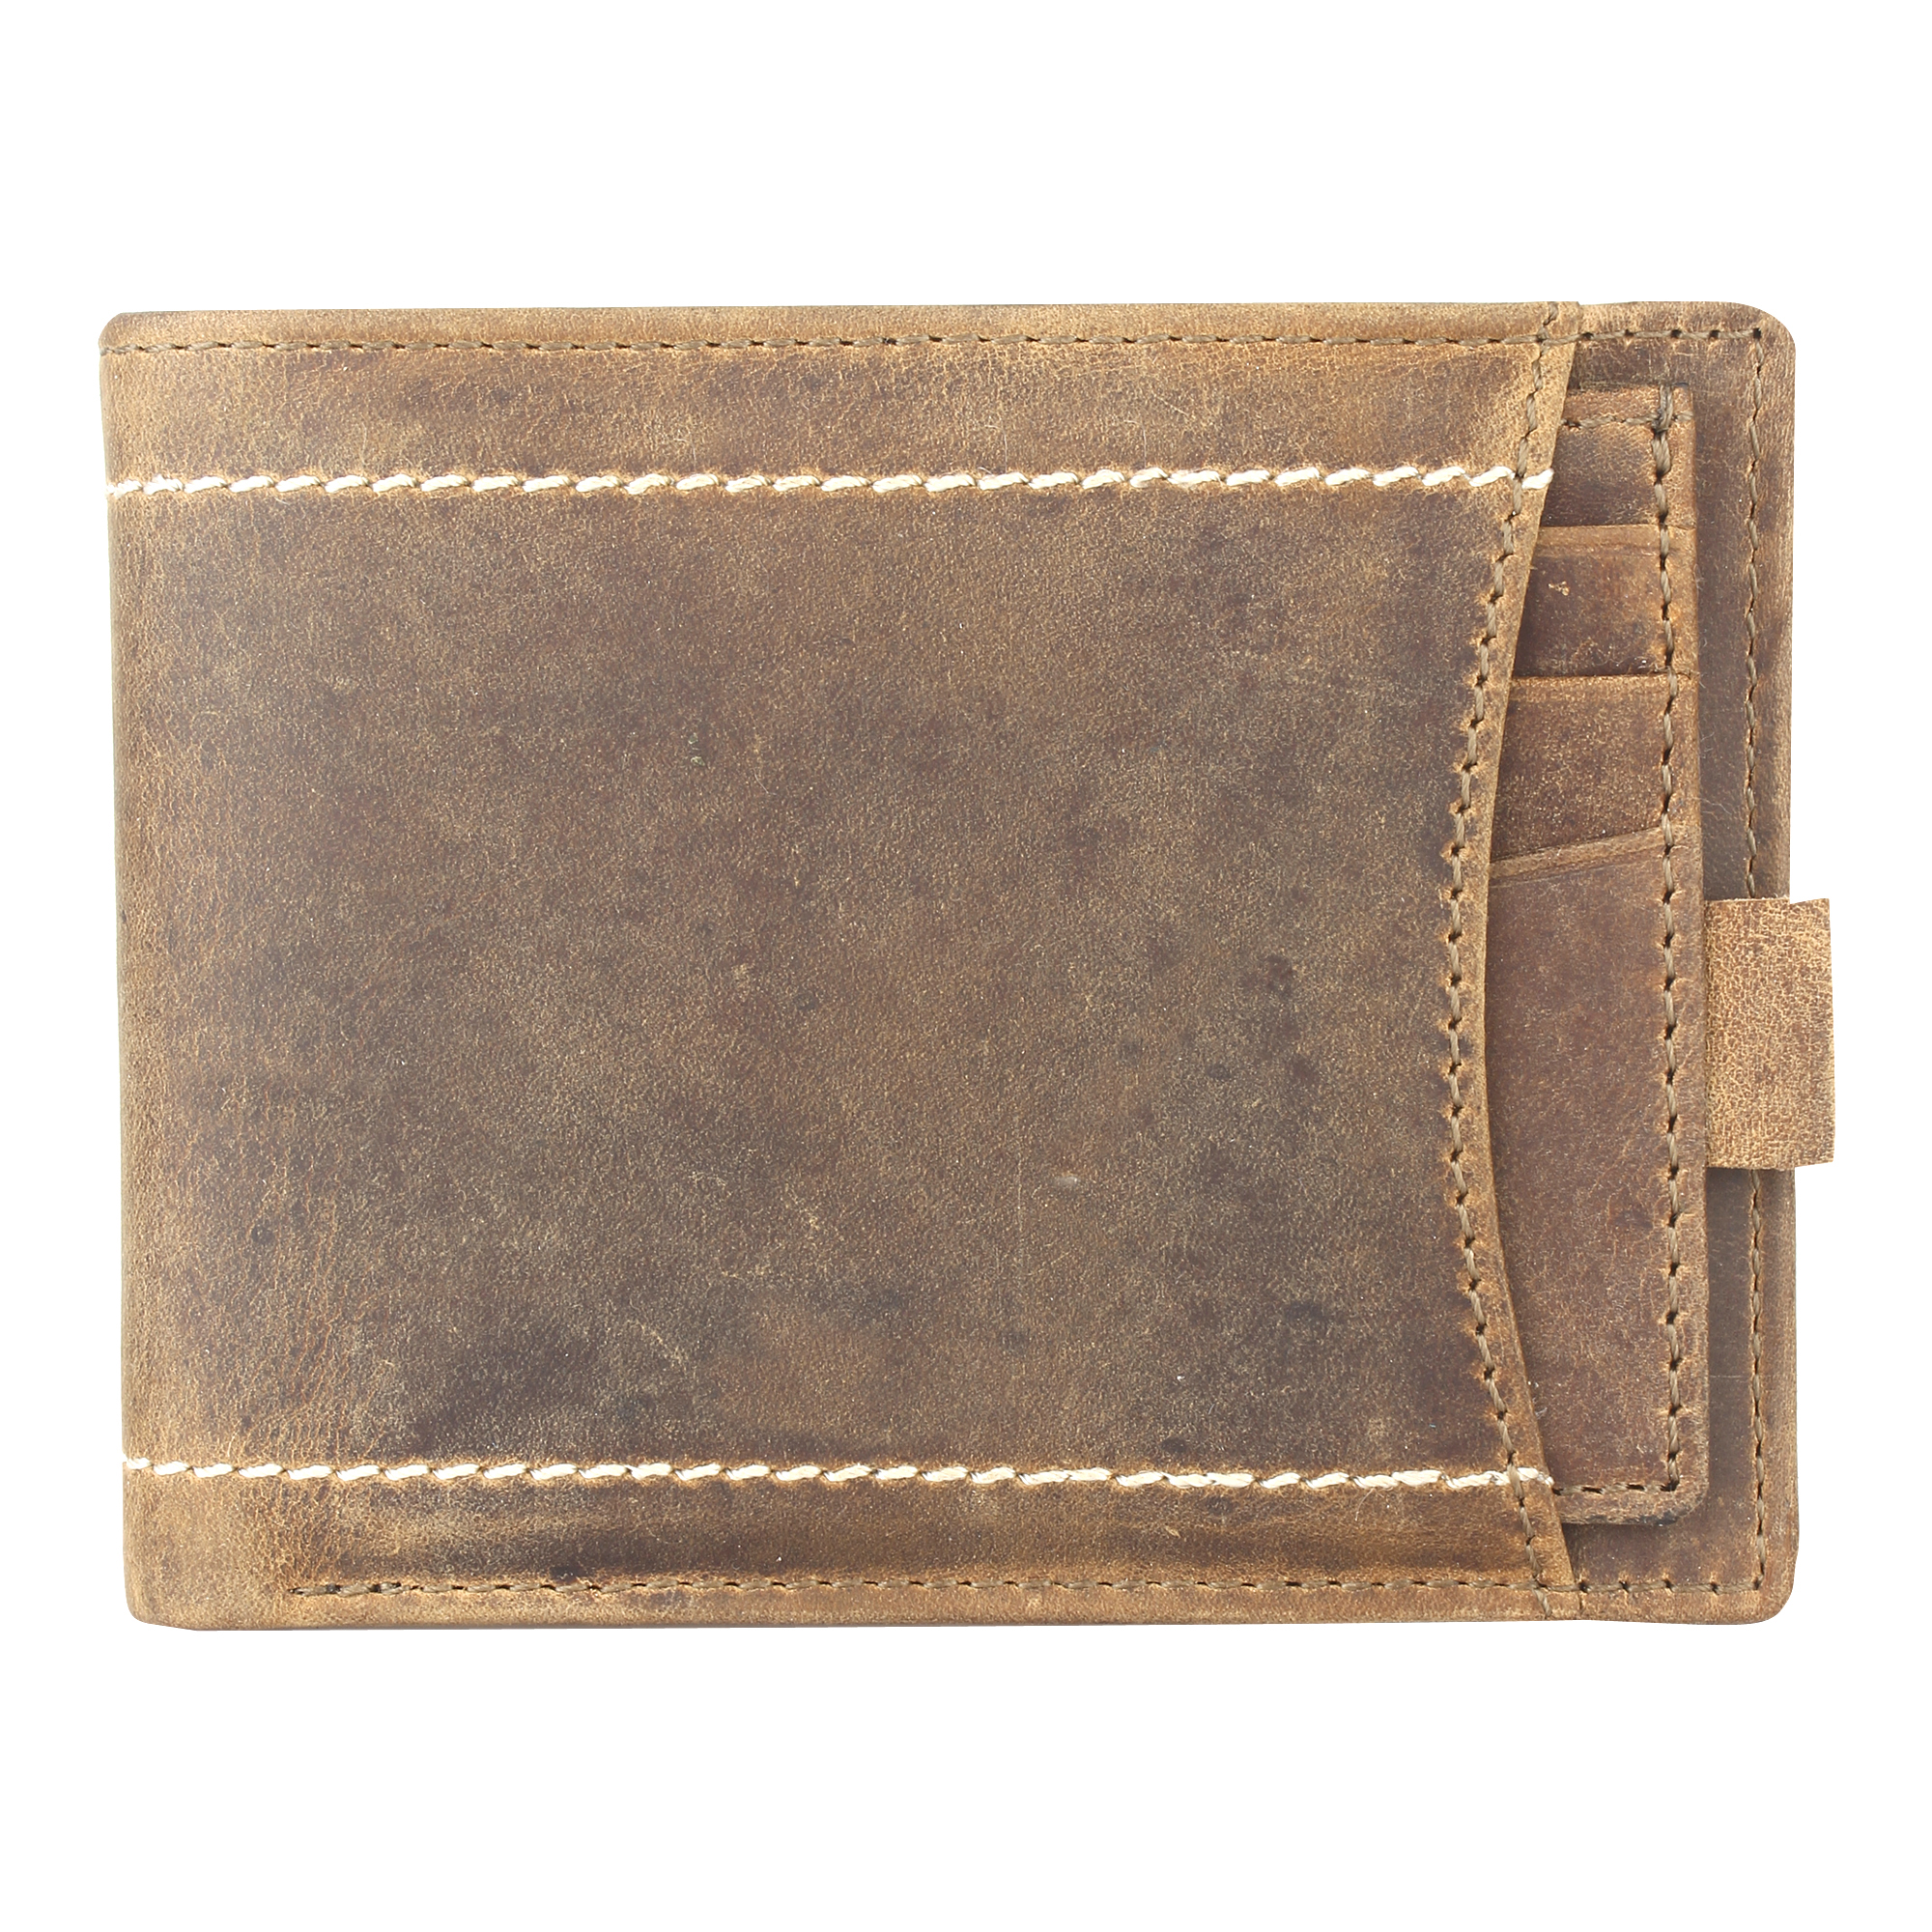 Leather Wallets Manufacturers in Armenia, Leather Wallets Suppliers in Armenia, Leather Wallets Wholesalers in Armenia, Leather Wallets Traders in Armenia, custom leather wallet manufacturers in Armenia, Leathe